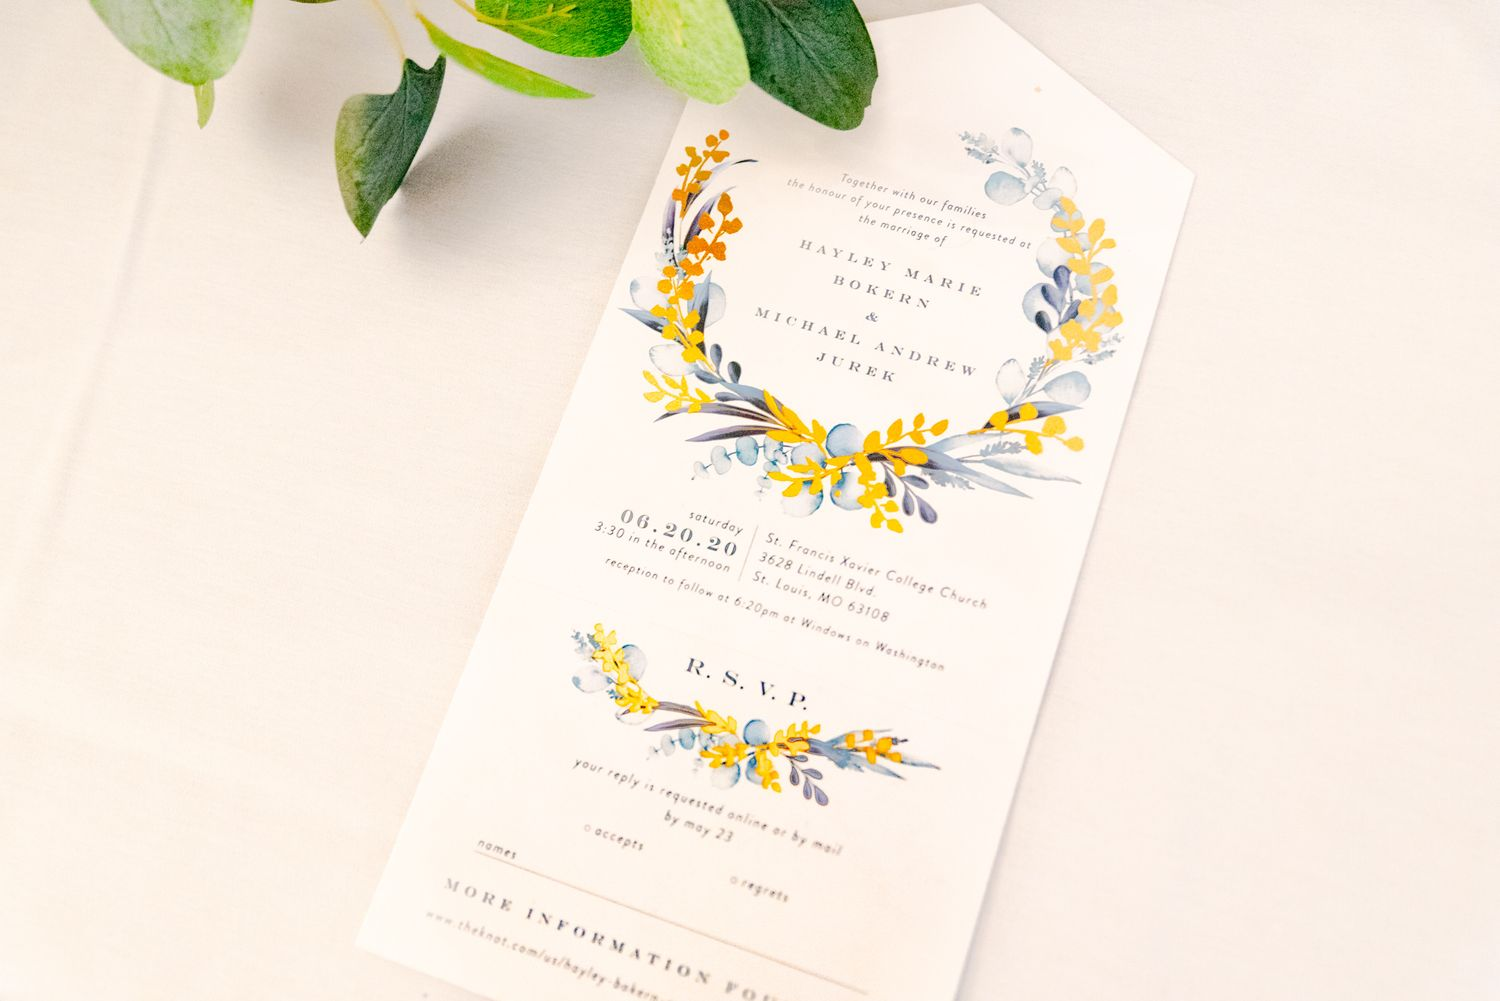 wedding invitation for bride and groom